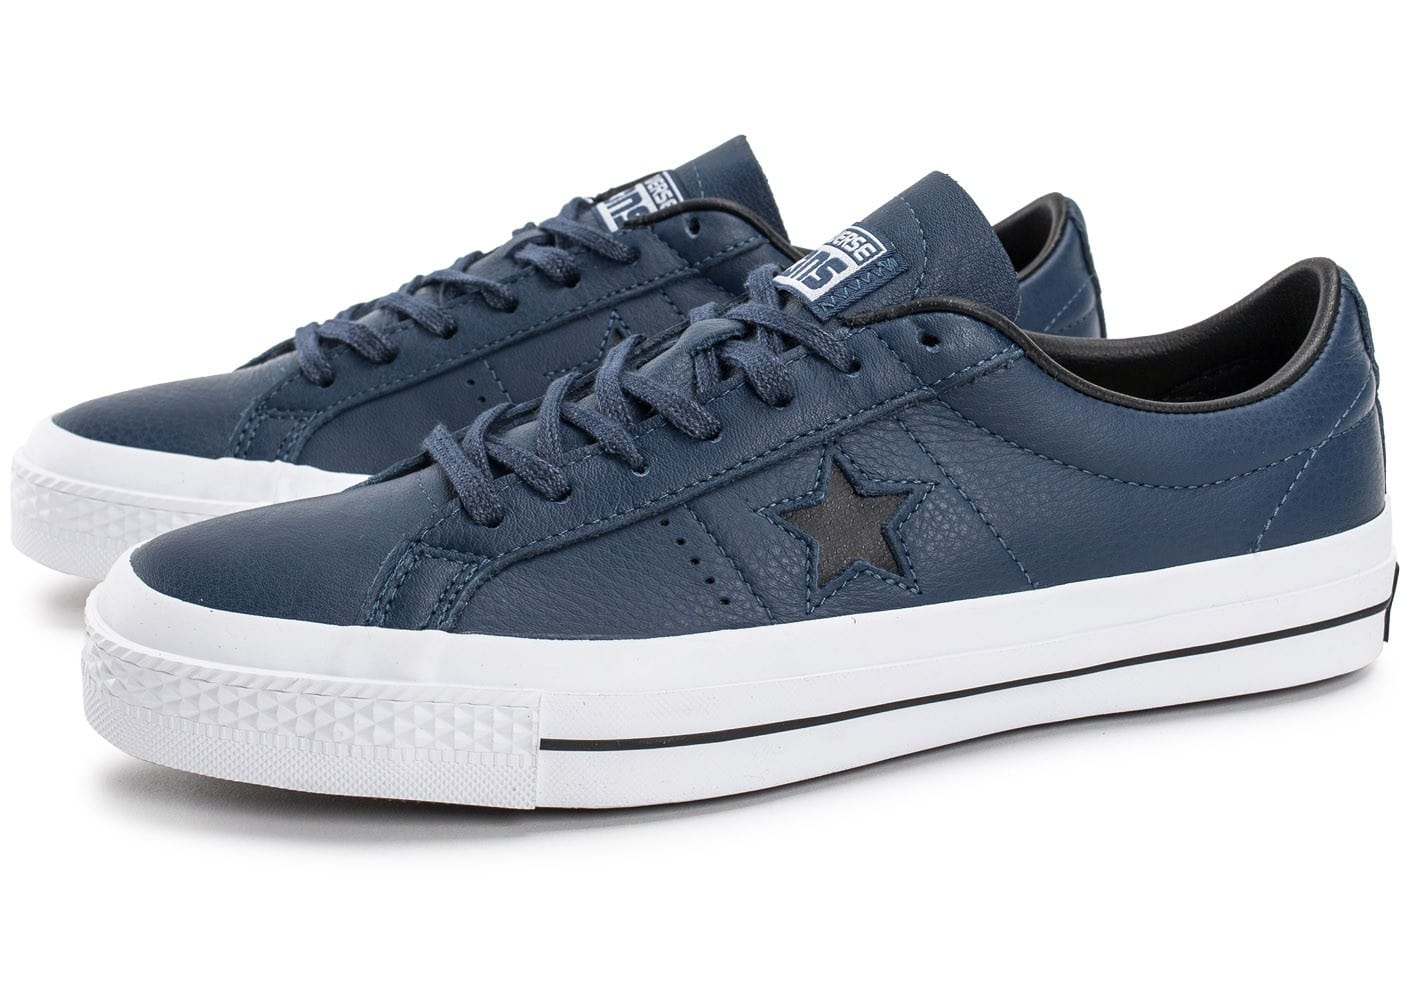 converse one star leather bleu marine chaussures homme chausport. Black Bedroom Furniture Sets. Home Design Ideas